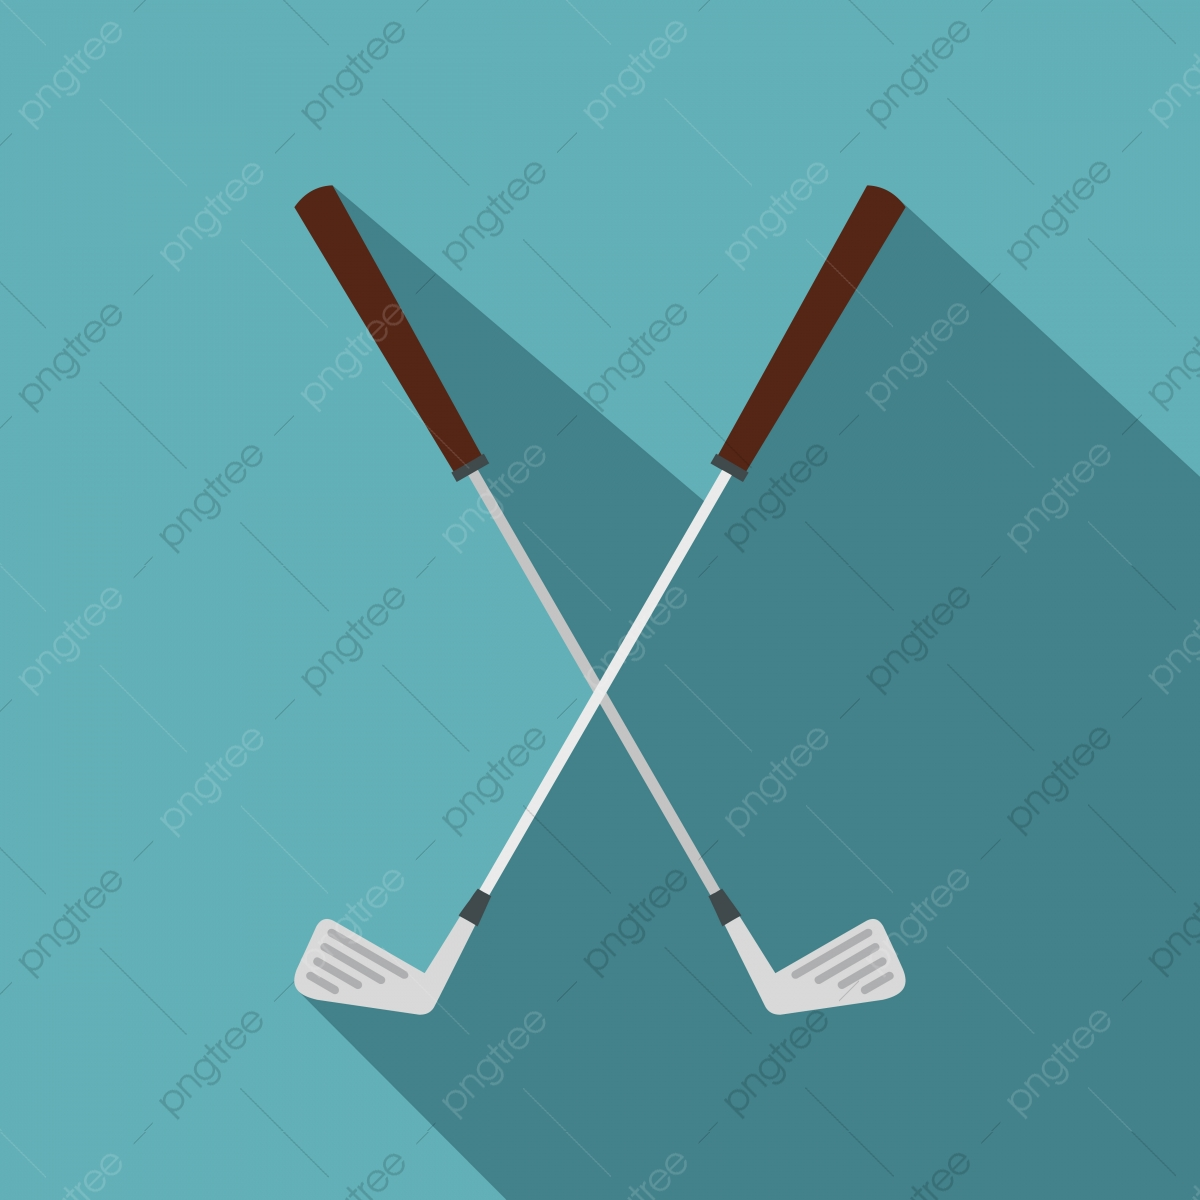 Crossed Golf Clubs Icon Flat Style Style Icons Golf Icons Club Png And Vector With Transparent Background For Free Download